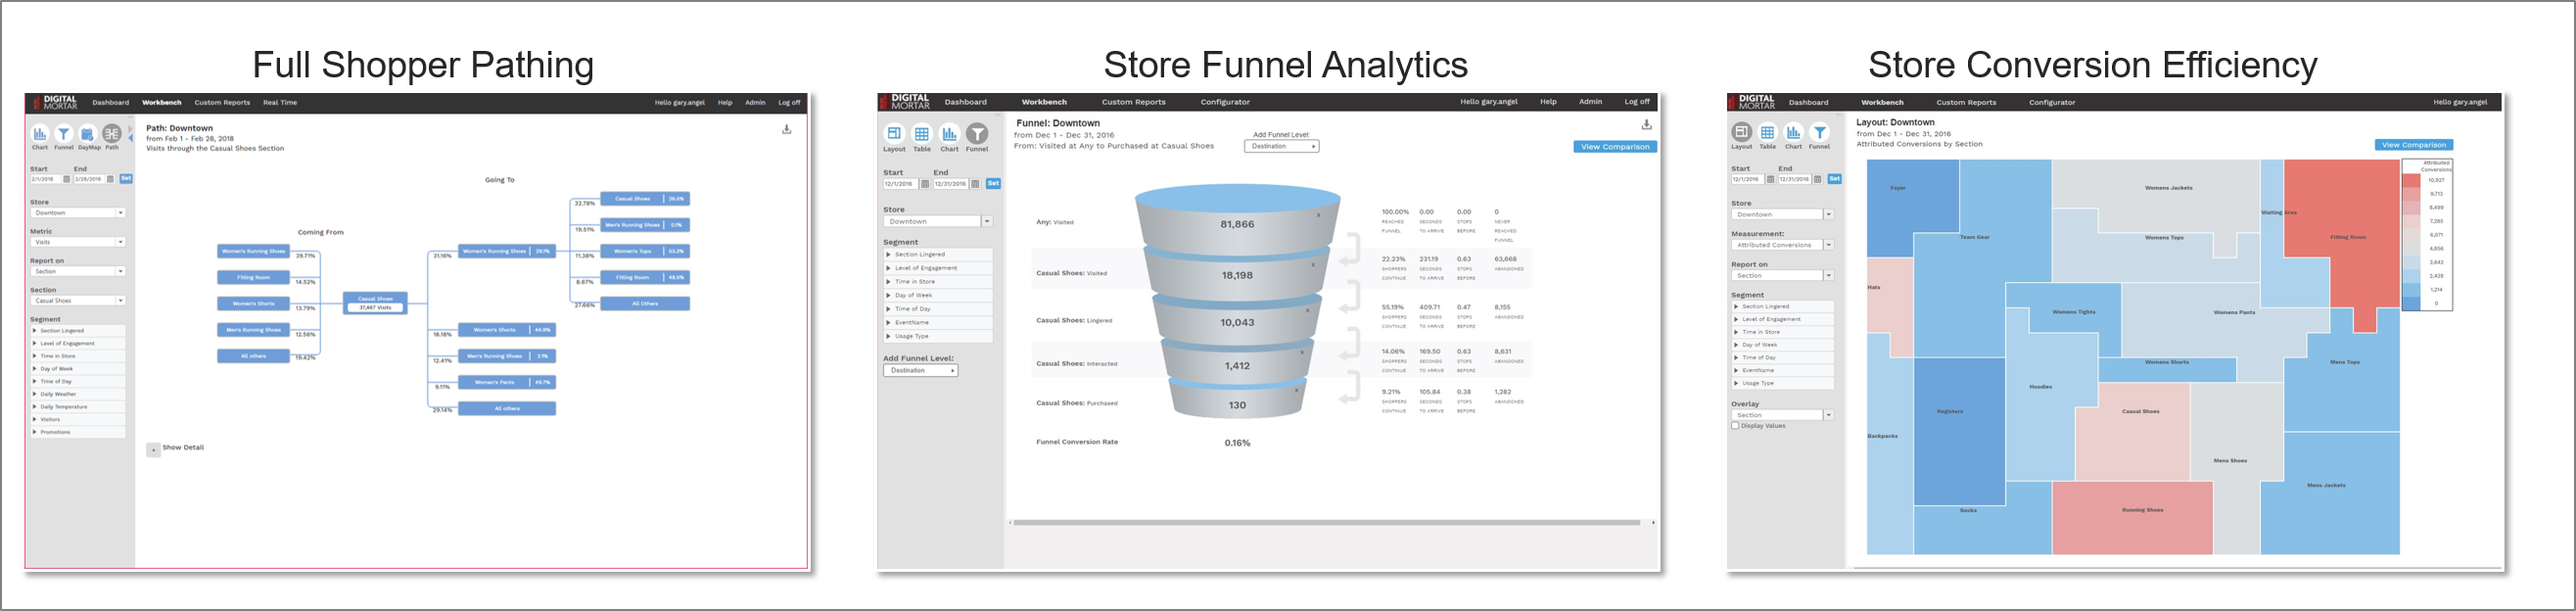 Mobile App GeoLocation: Enabling Accurate In-Store Shopper